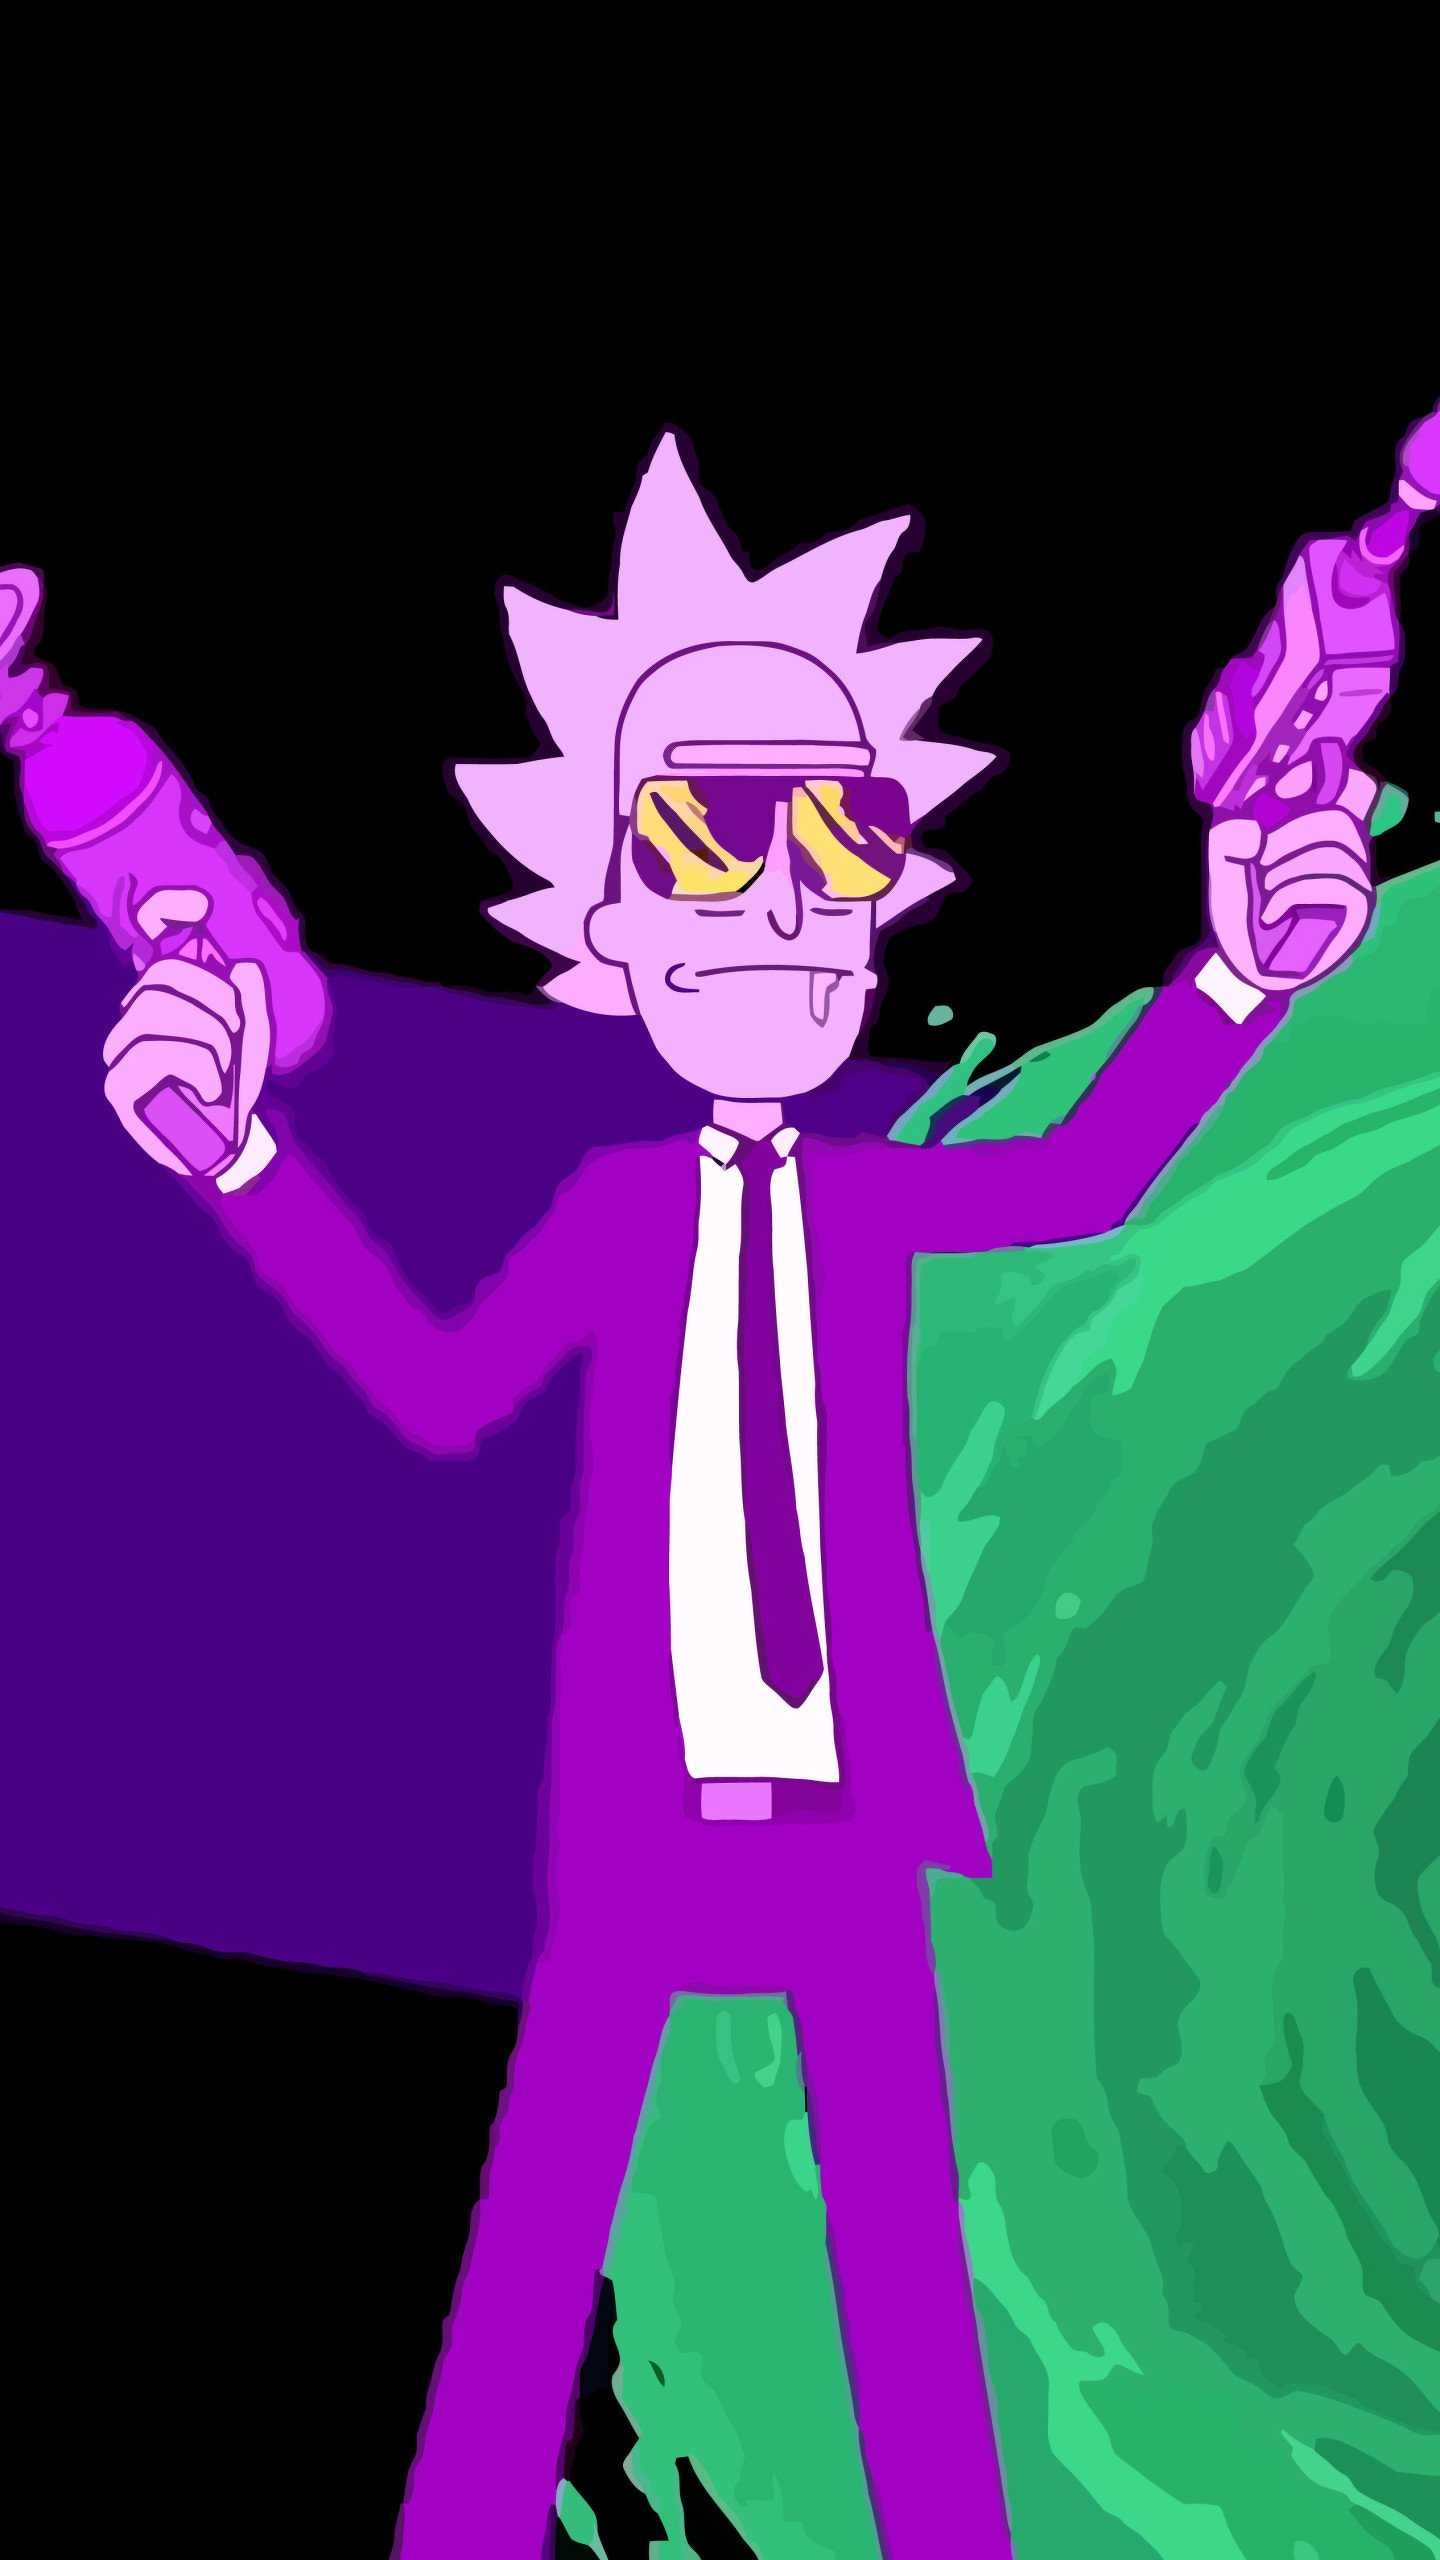 Rick And Morty HD Android Wallpapers - Wallpaper Cave